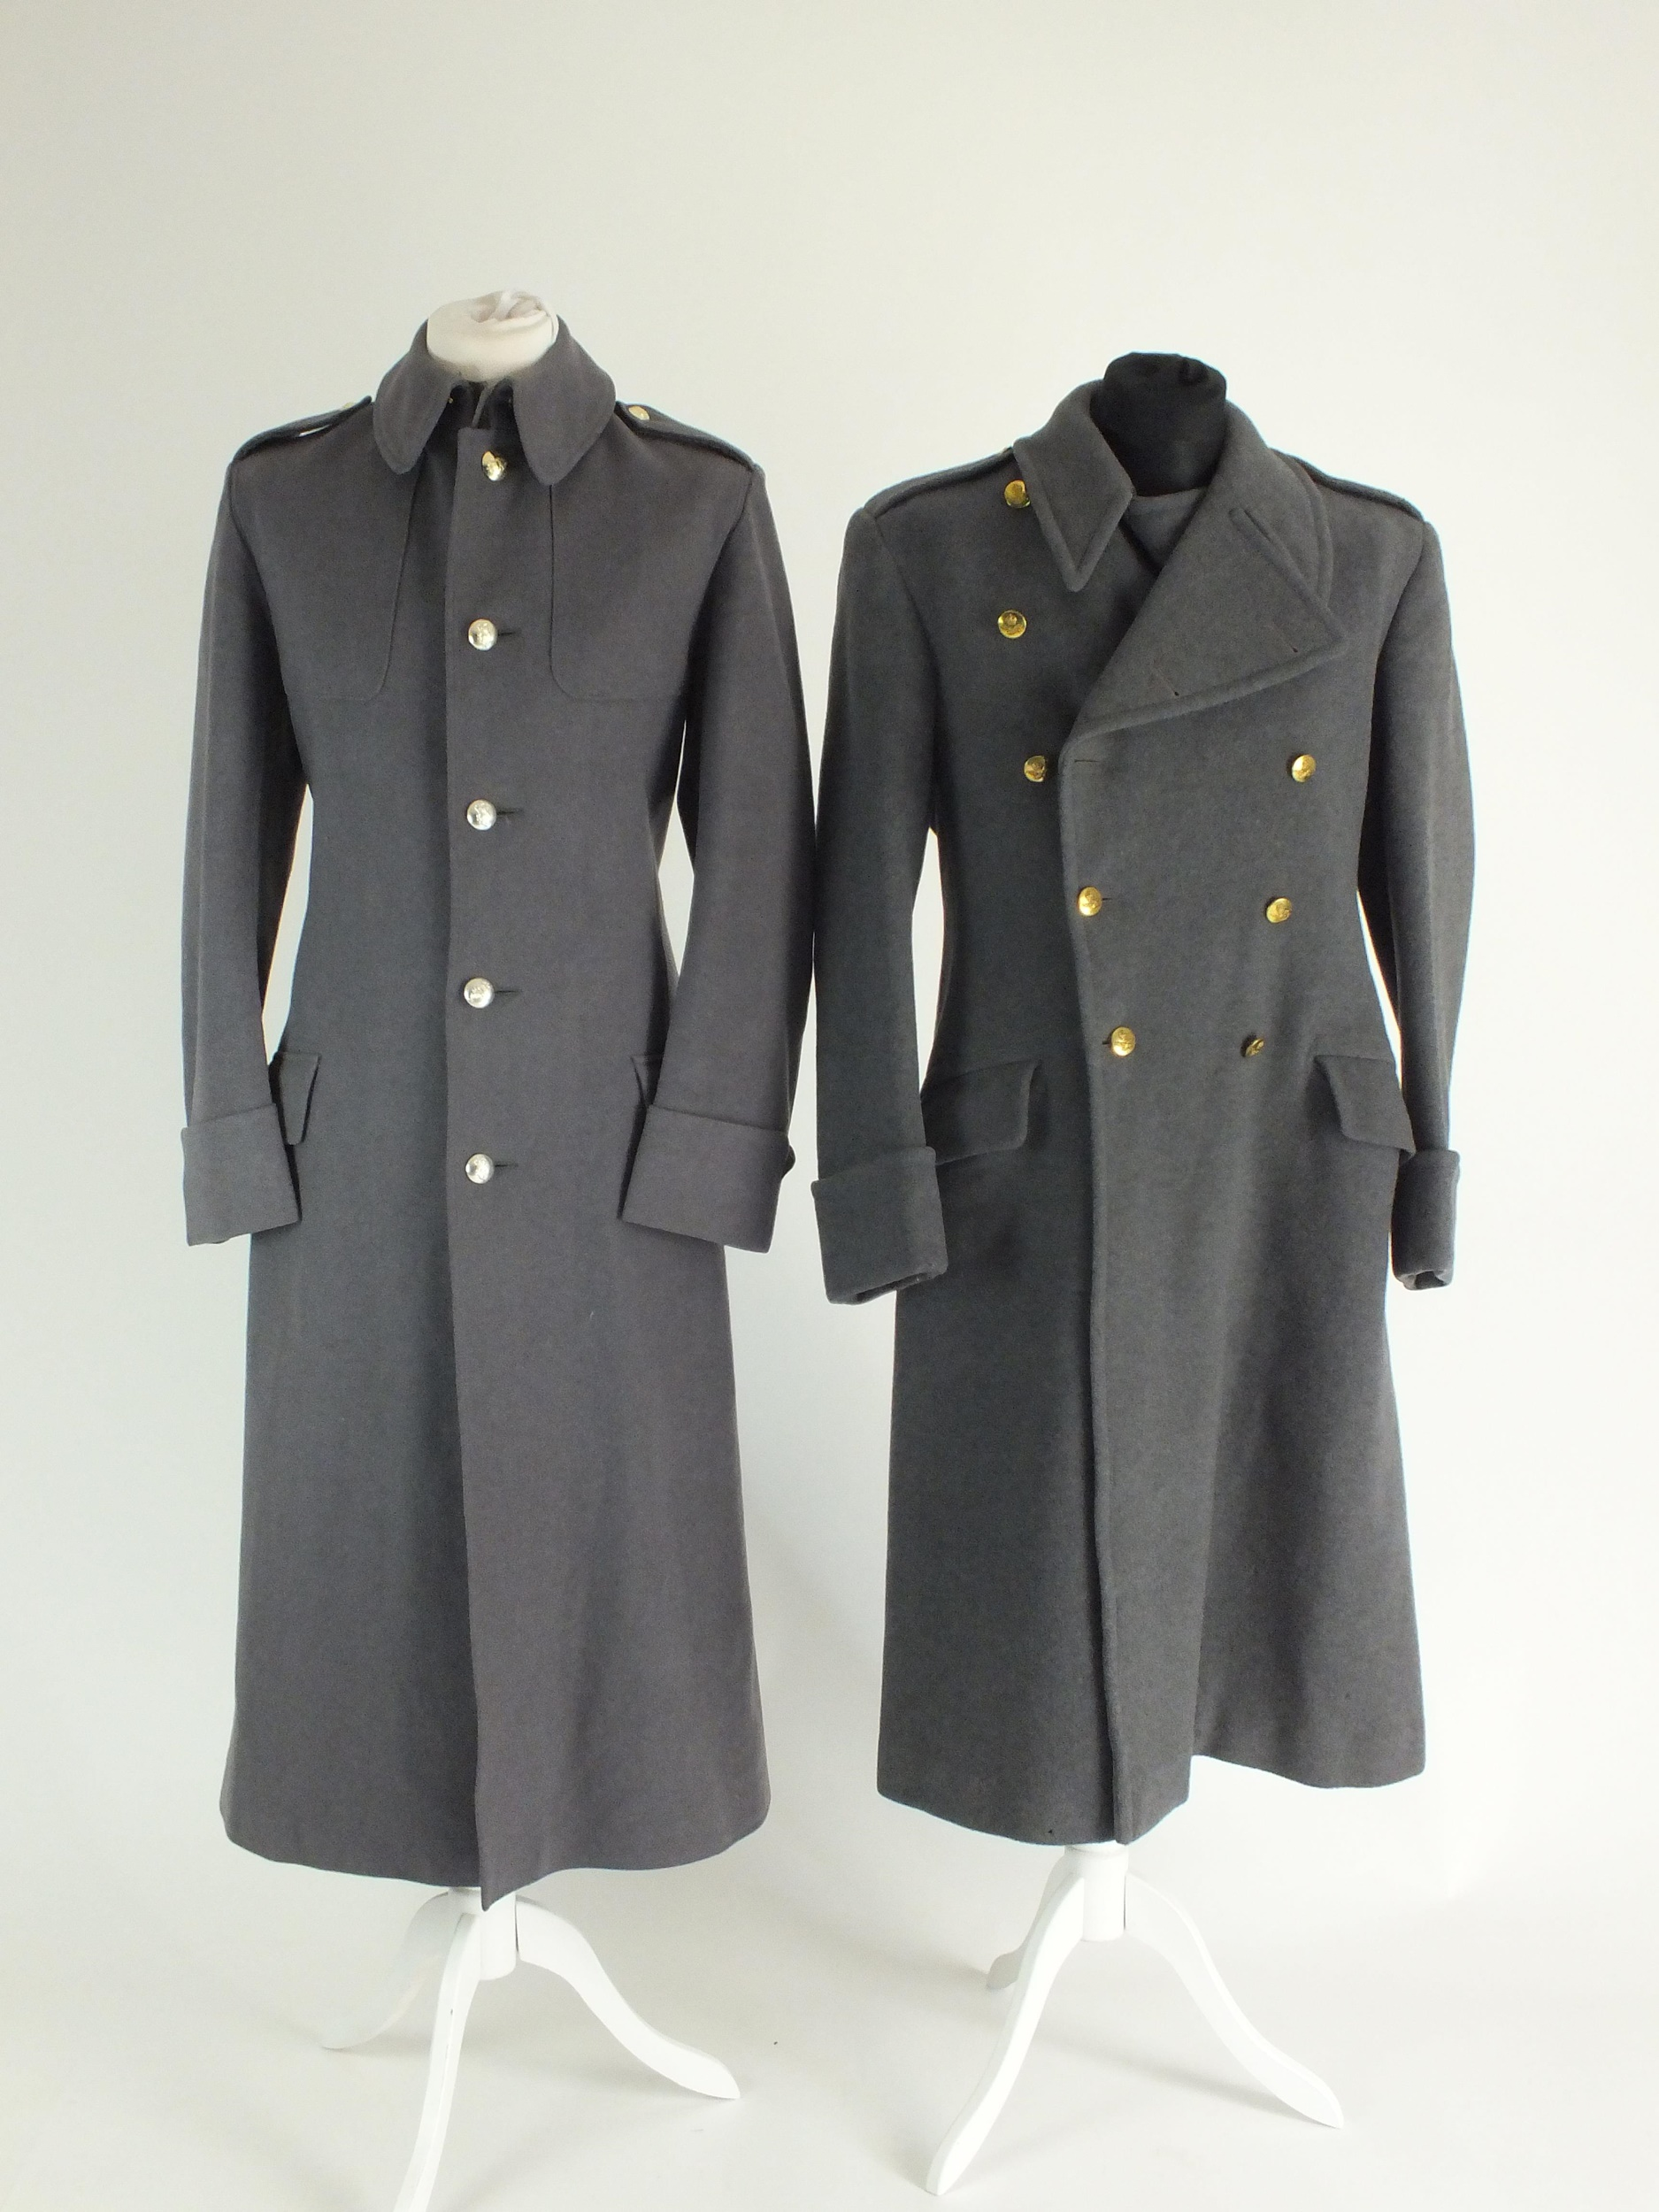 British Army and RAF greatcoats